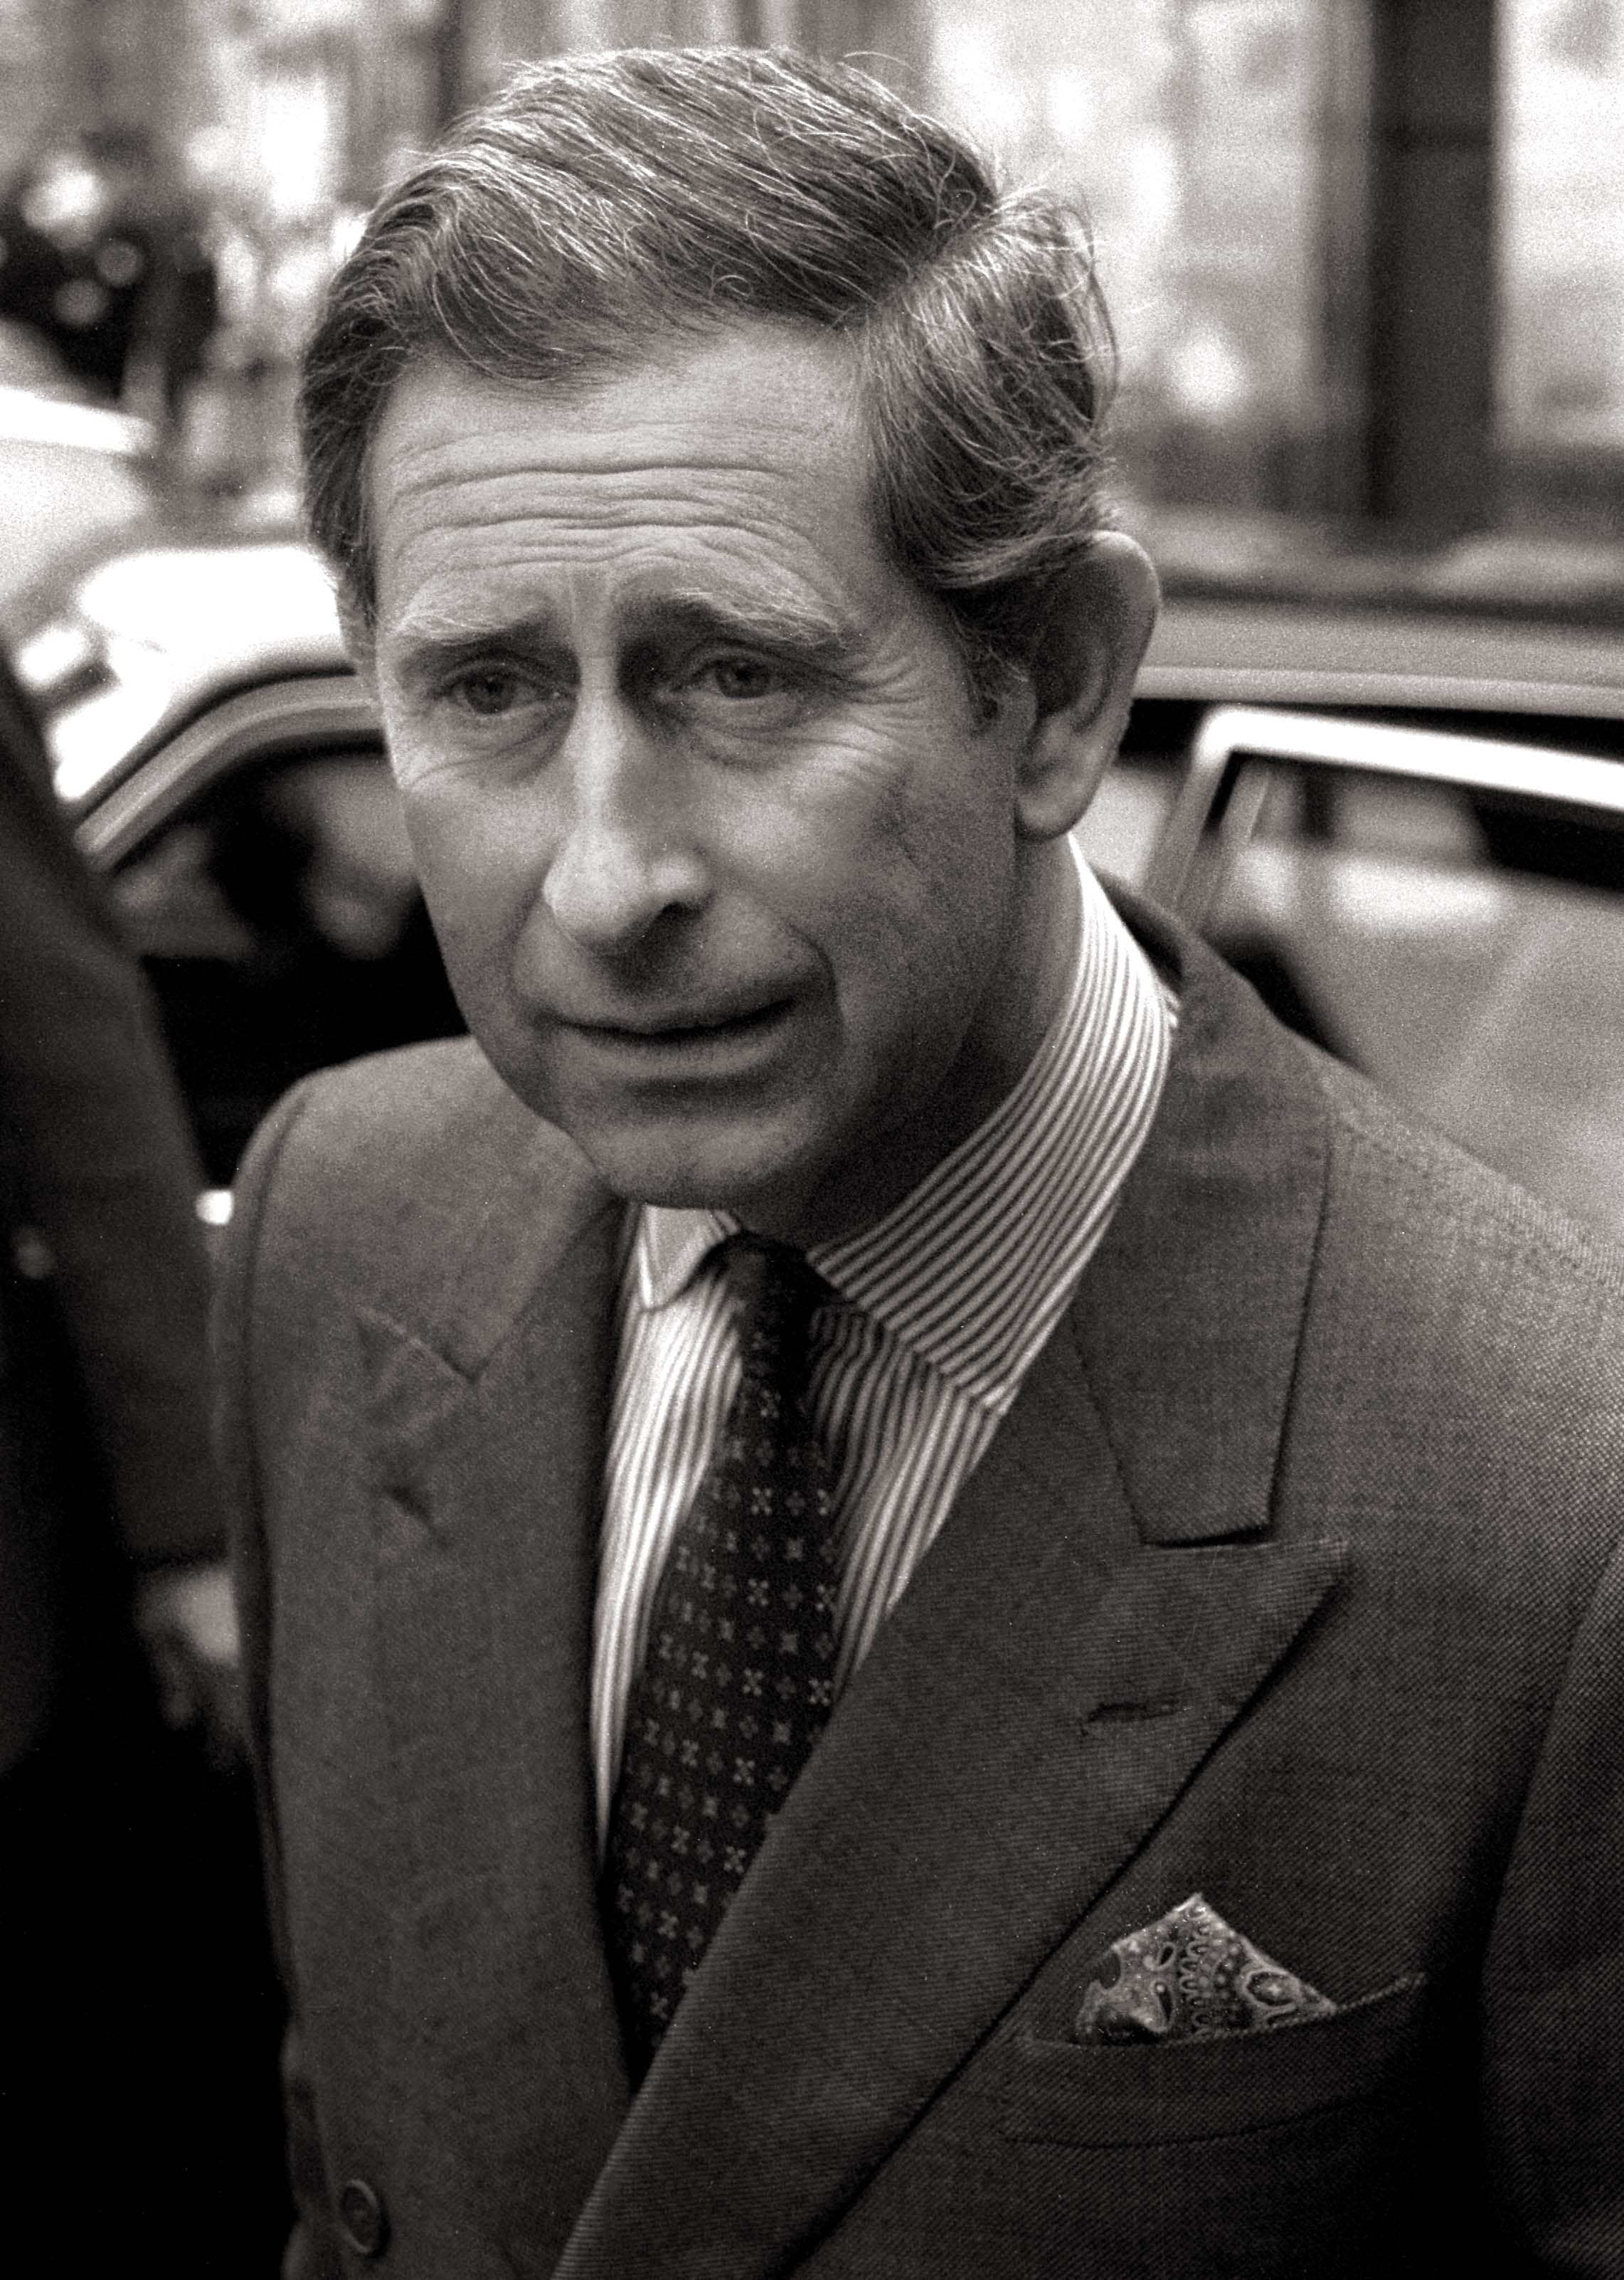 His Royal Highness Prince of Wales - Durham, England - 1997